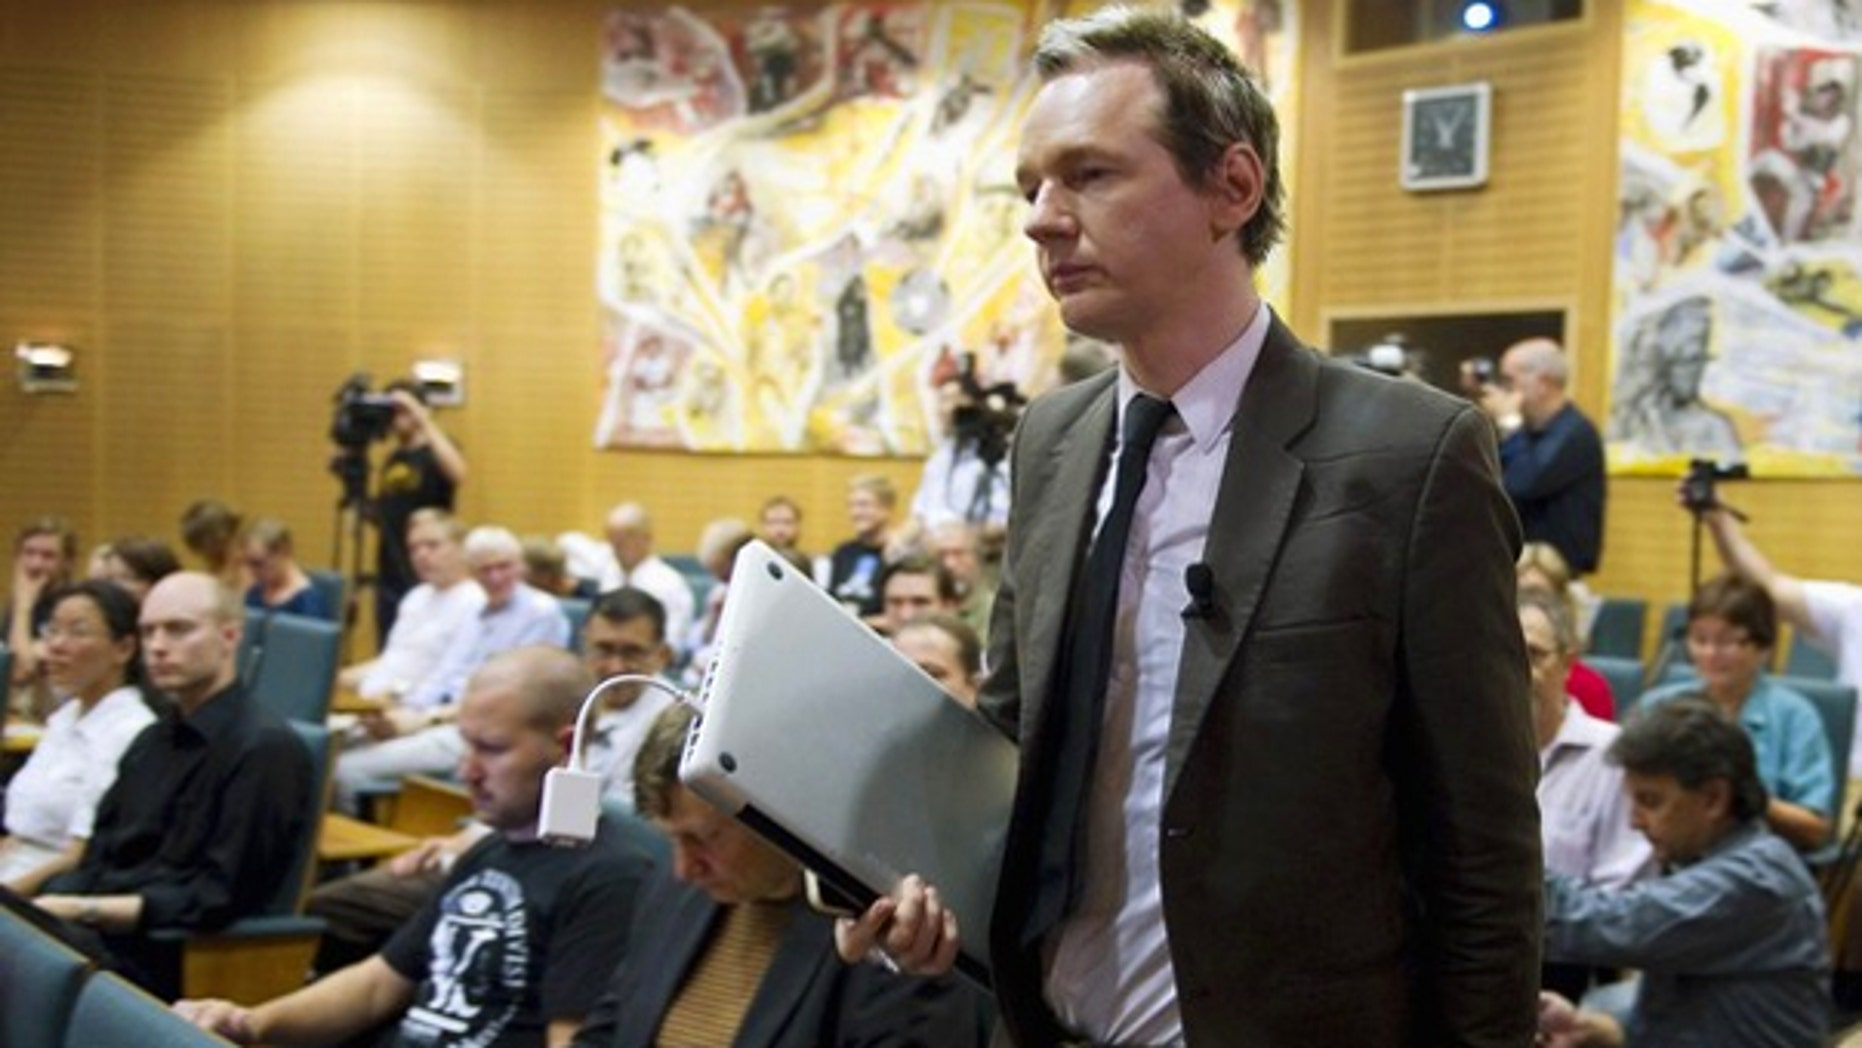 Aug. 14: WikiLeaks founder Julian Assange attends a seminar at the Swedish Trade Union Confederation headquarters in Stockholm.